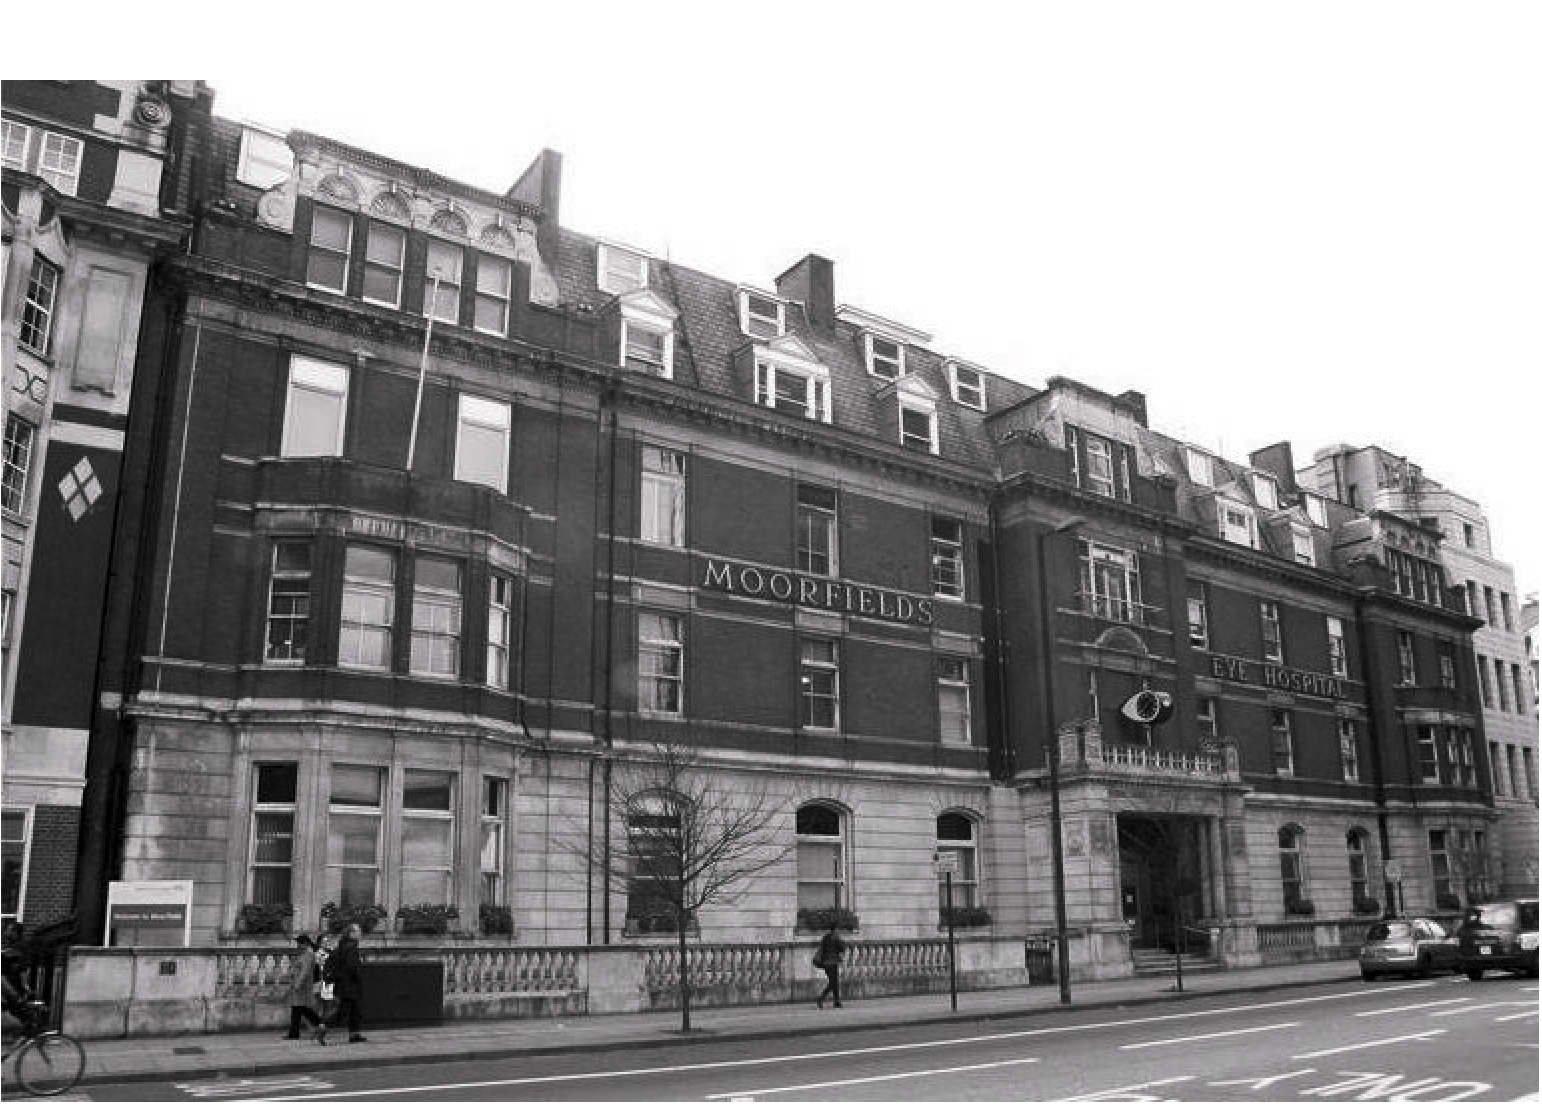 Moorfields eye hospital photo taken from City Road